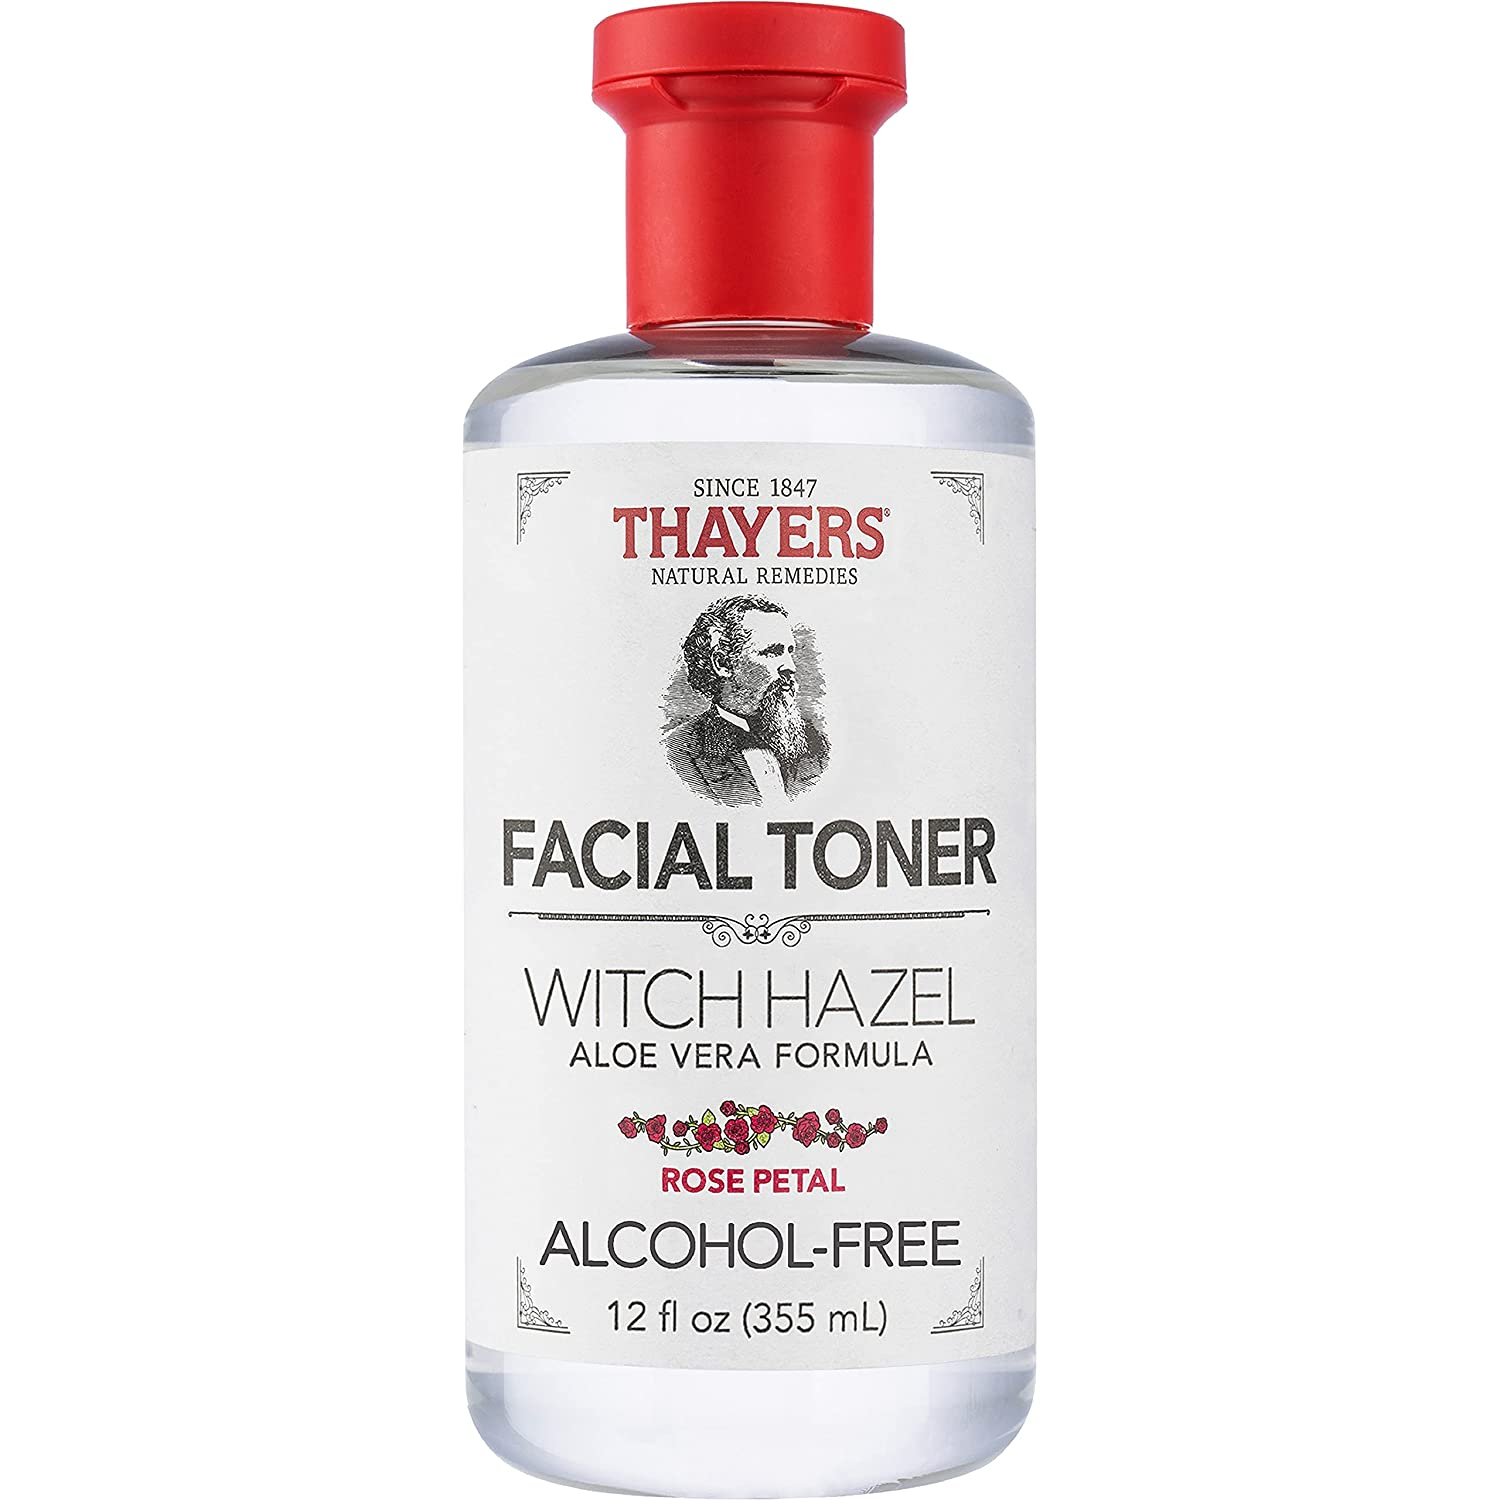 Skin Care Routine For Oily Skin and products you should use for example Thayers facial toner